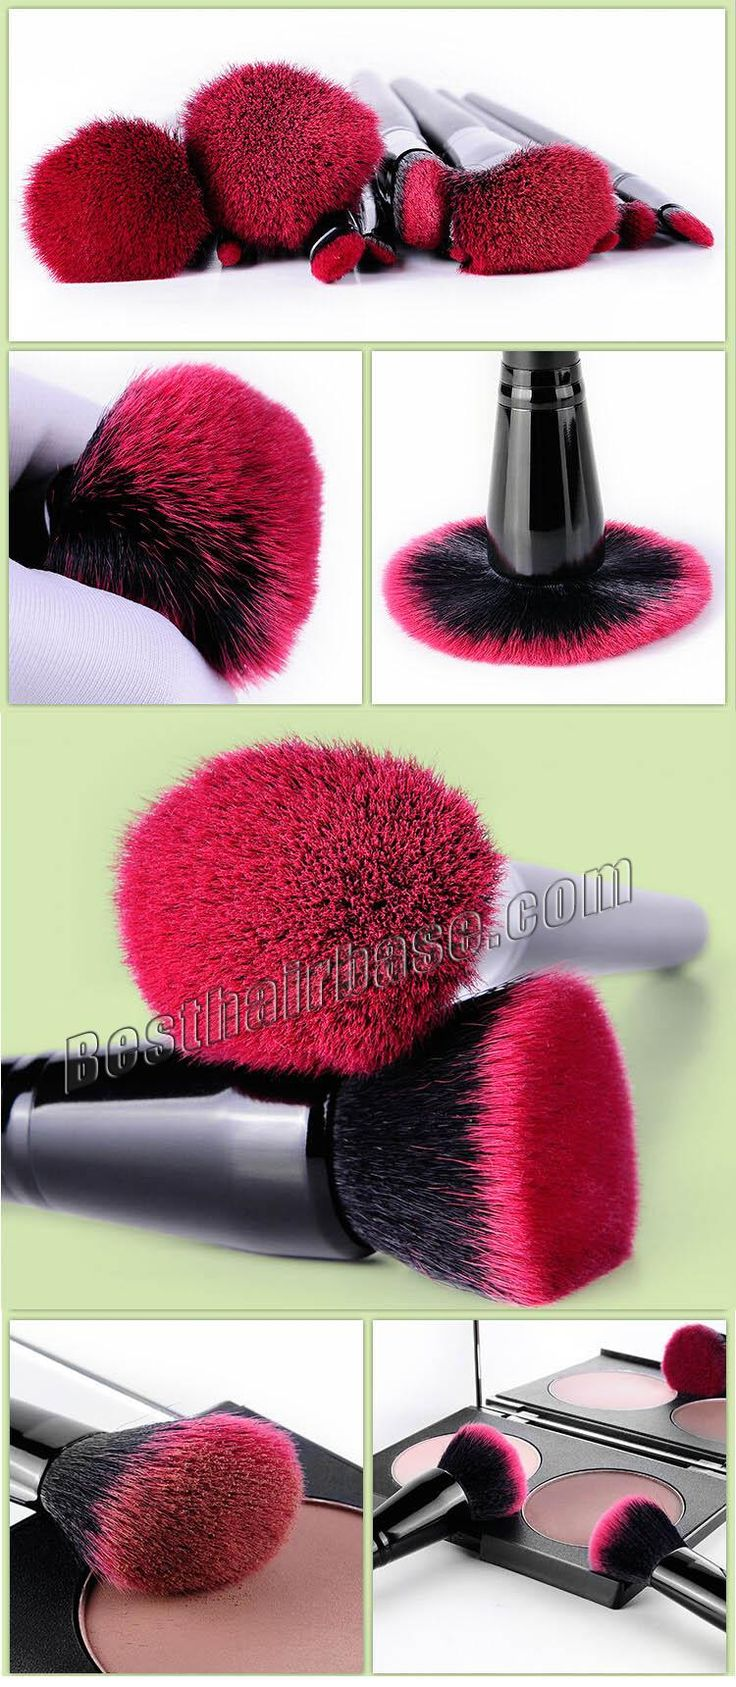 13 Pcs Red And Black Anti-microbial Artificial Fibre Brush Set  #makeupbrush